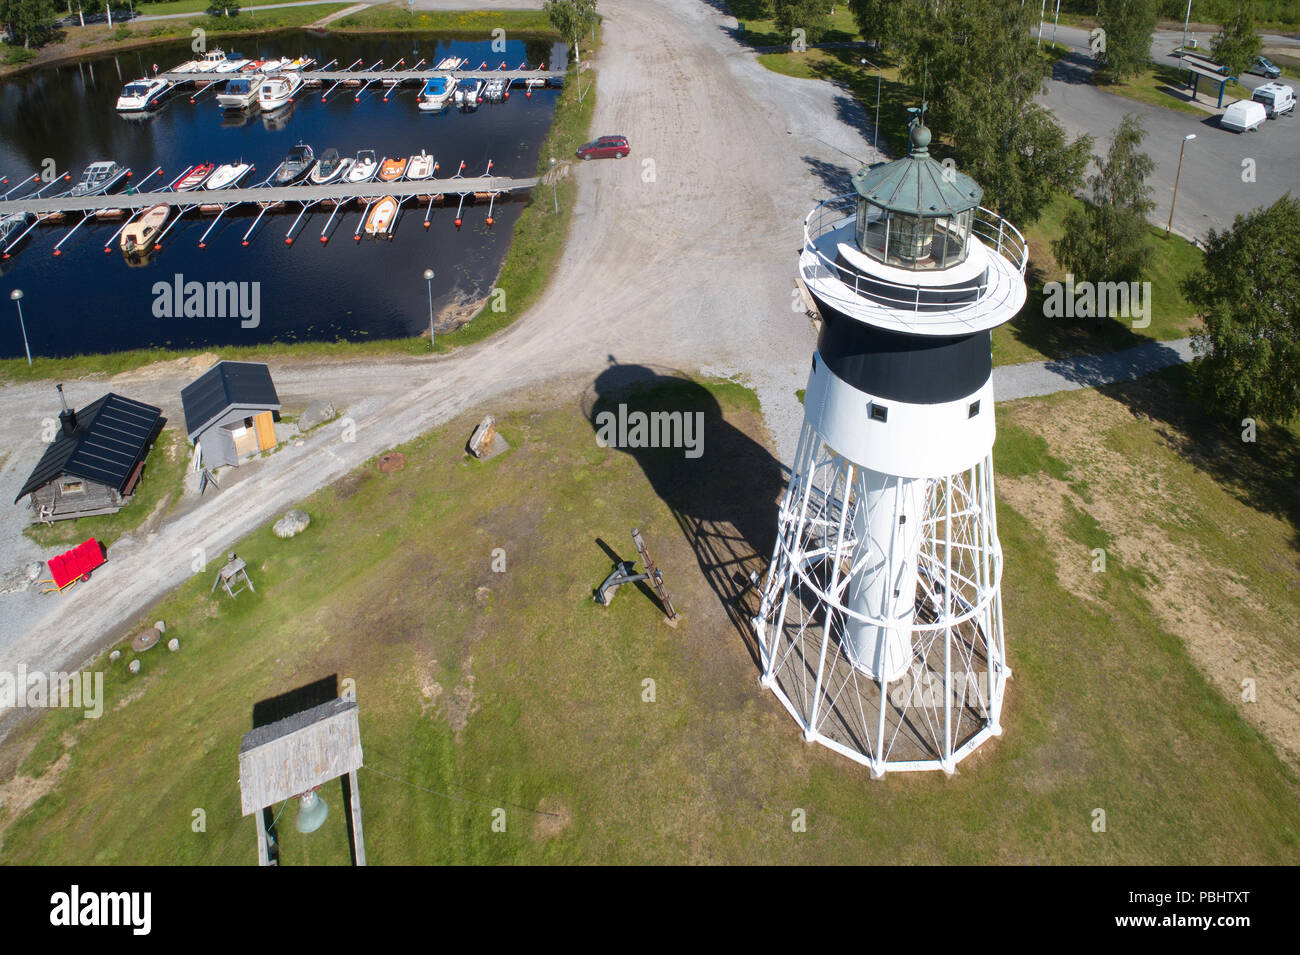 Javre, Sweden - June 21, 2018: Aerial view of the lighthouse at Javre. Stock Photo